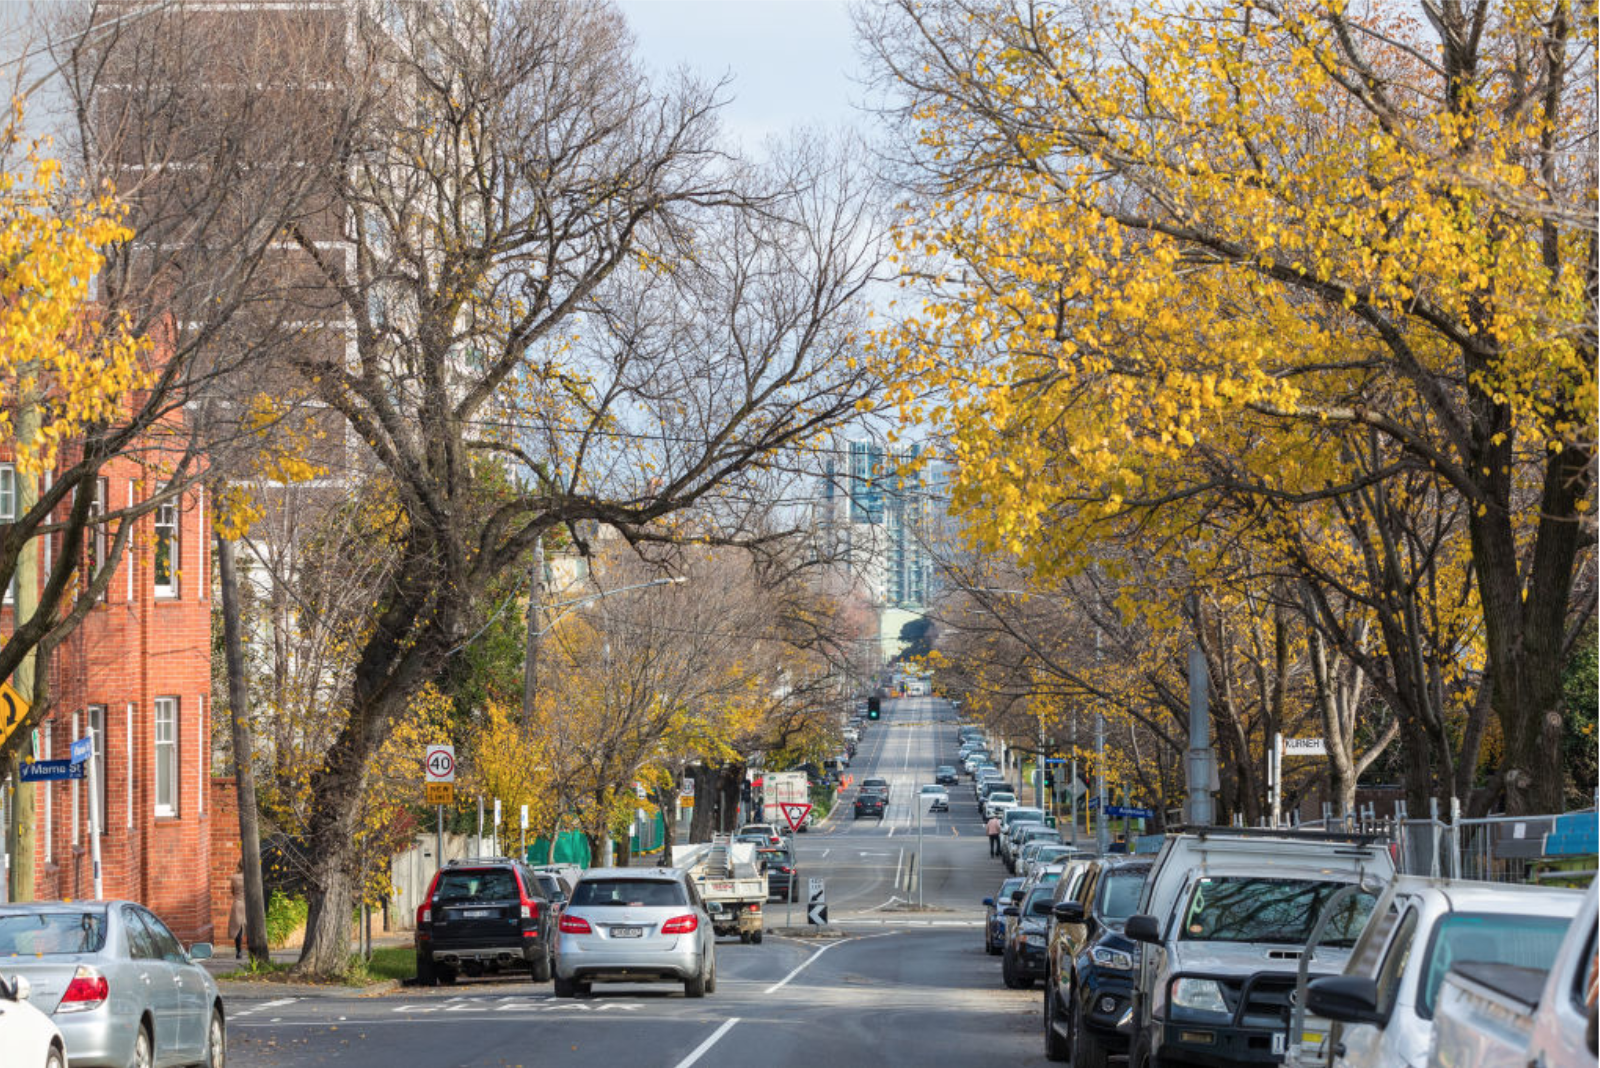 5 Reasons To Leave Your Home In South Yarra